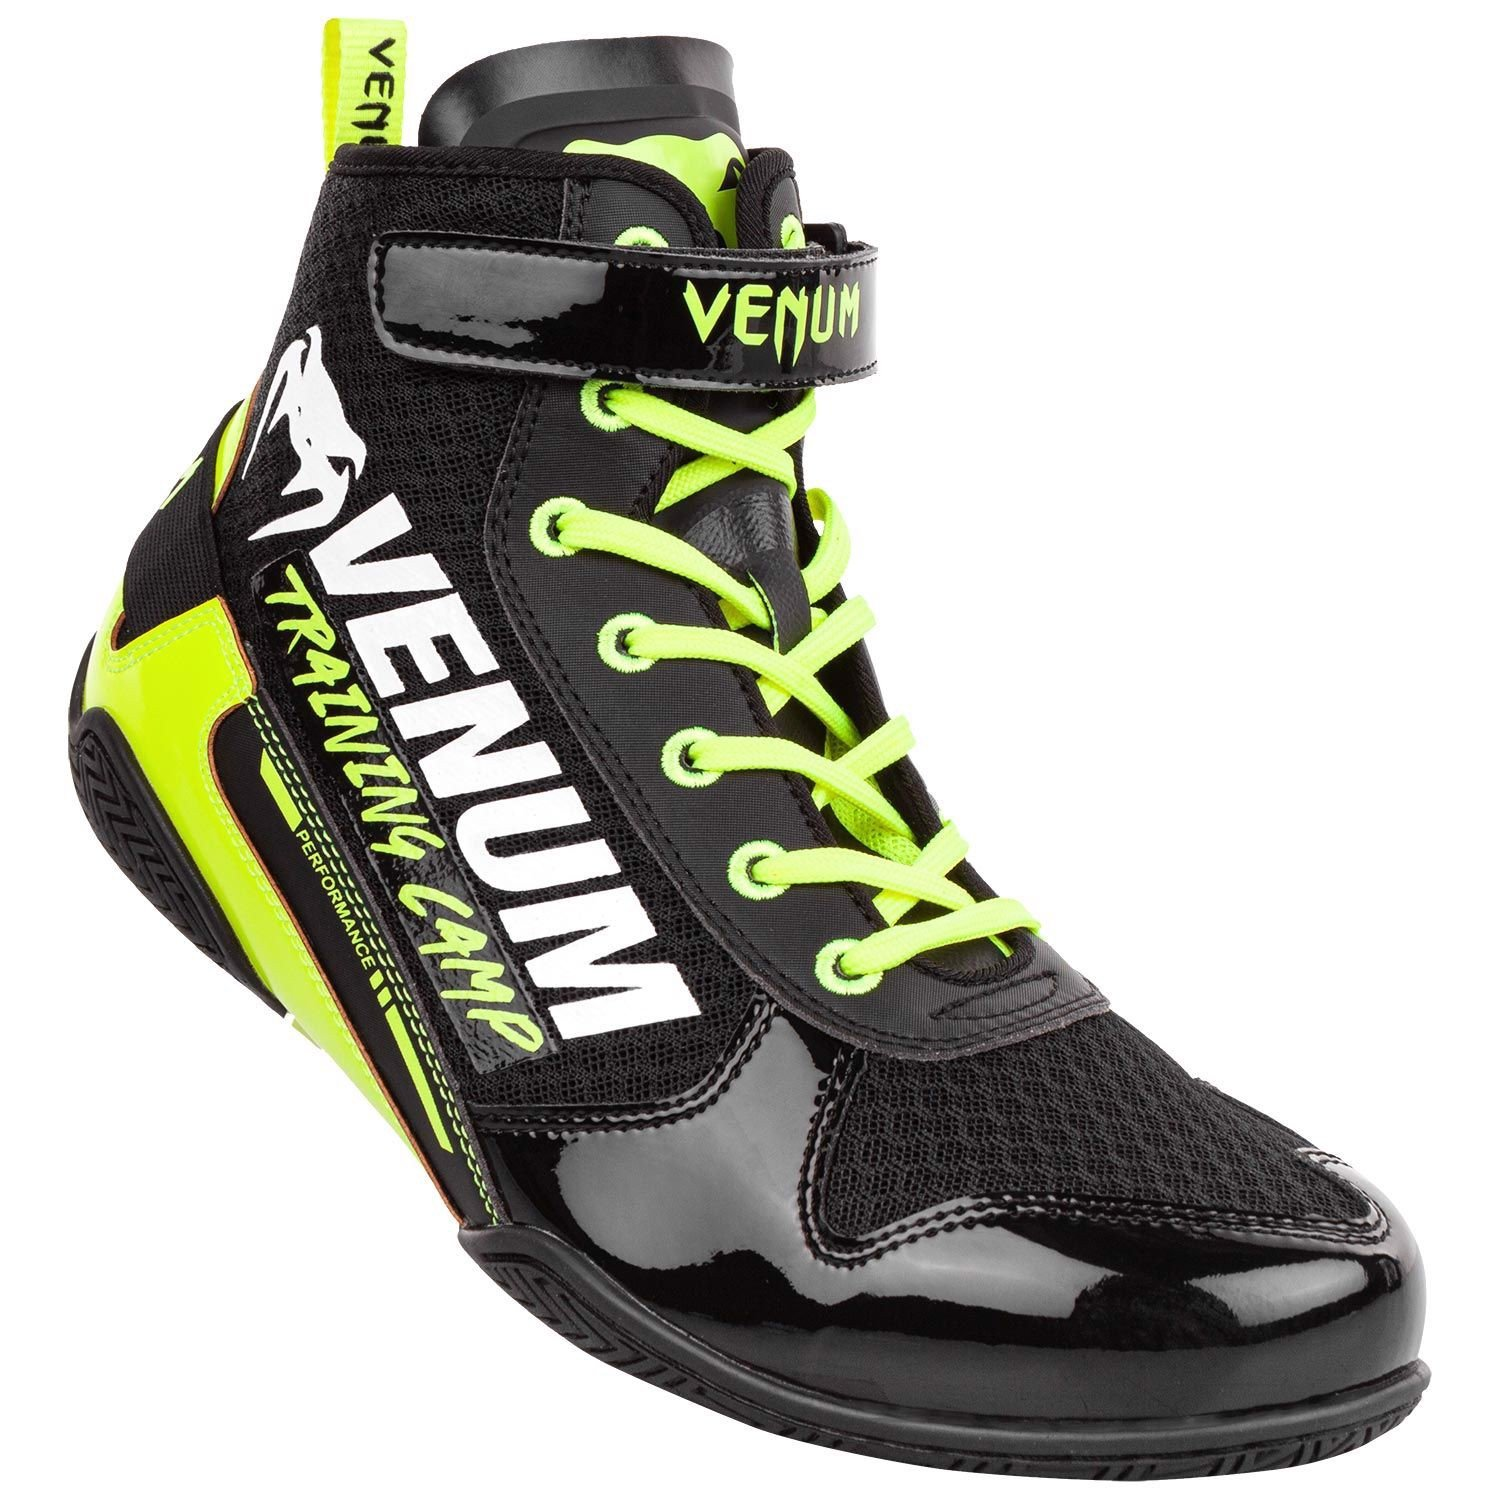 GIÀY VENUM GIANT LOW VTC 2 EDITION BOXING SHOES - BLACK/NEO YELLOW